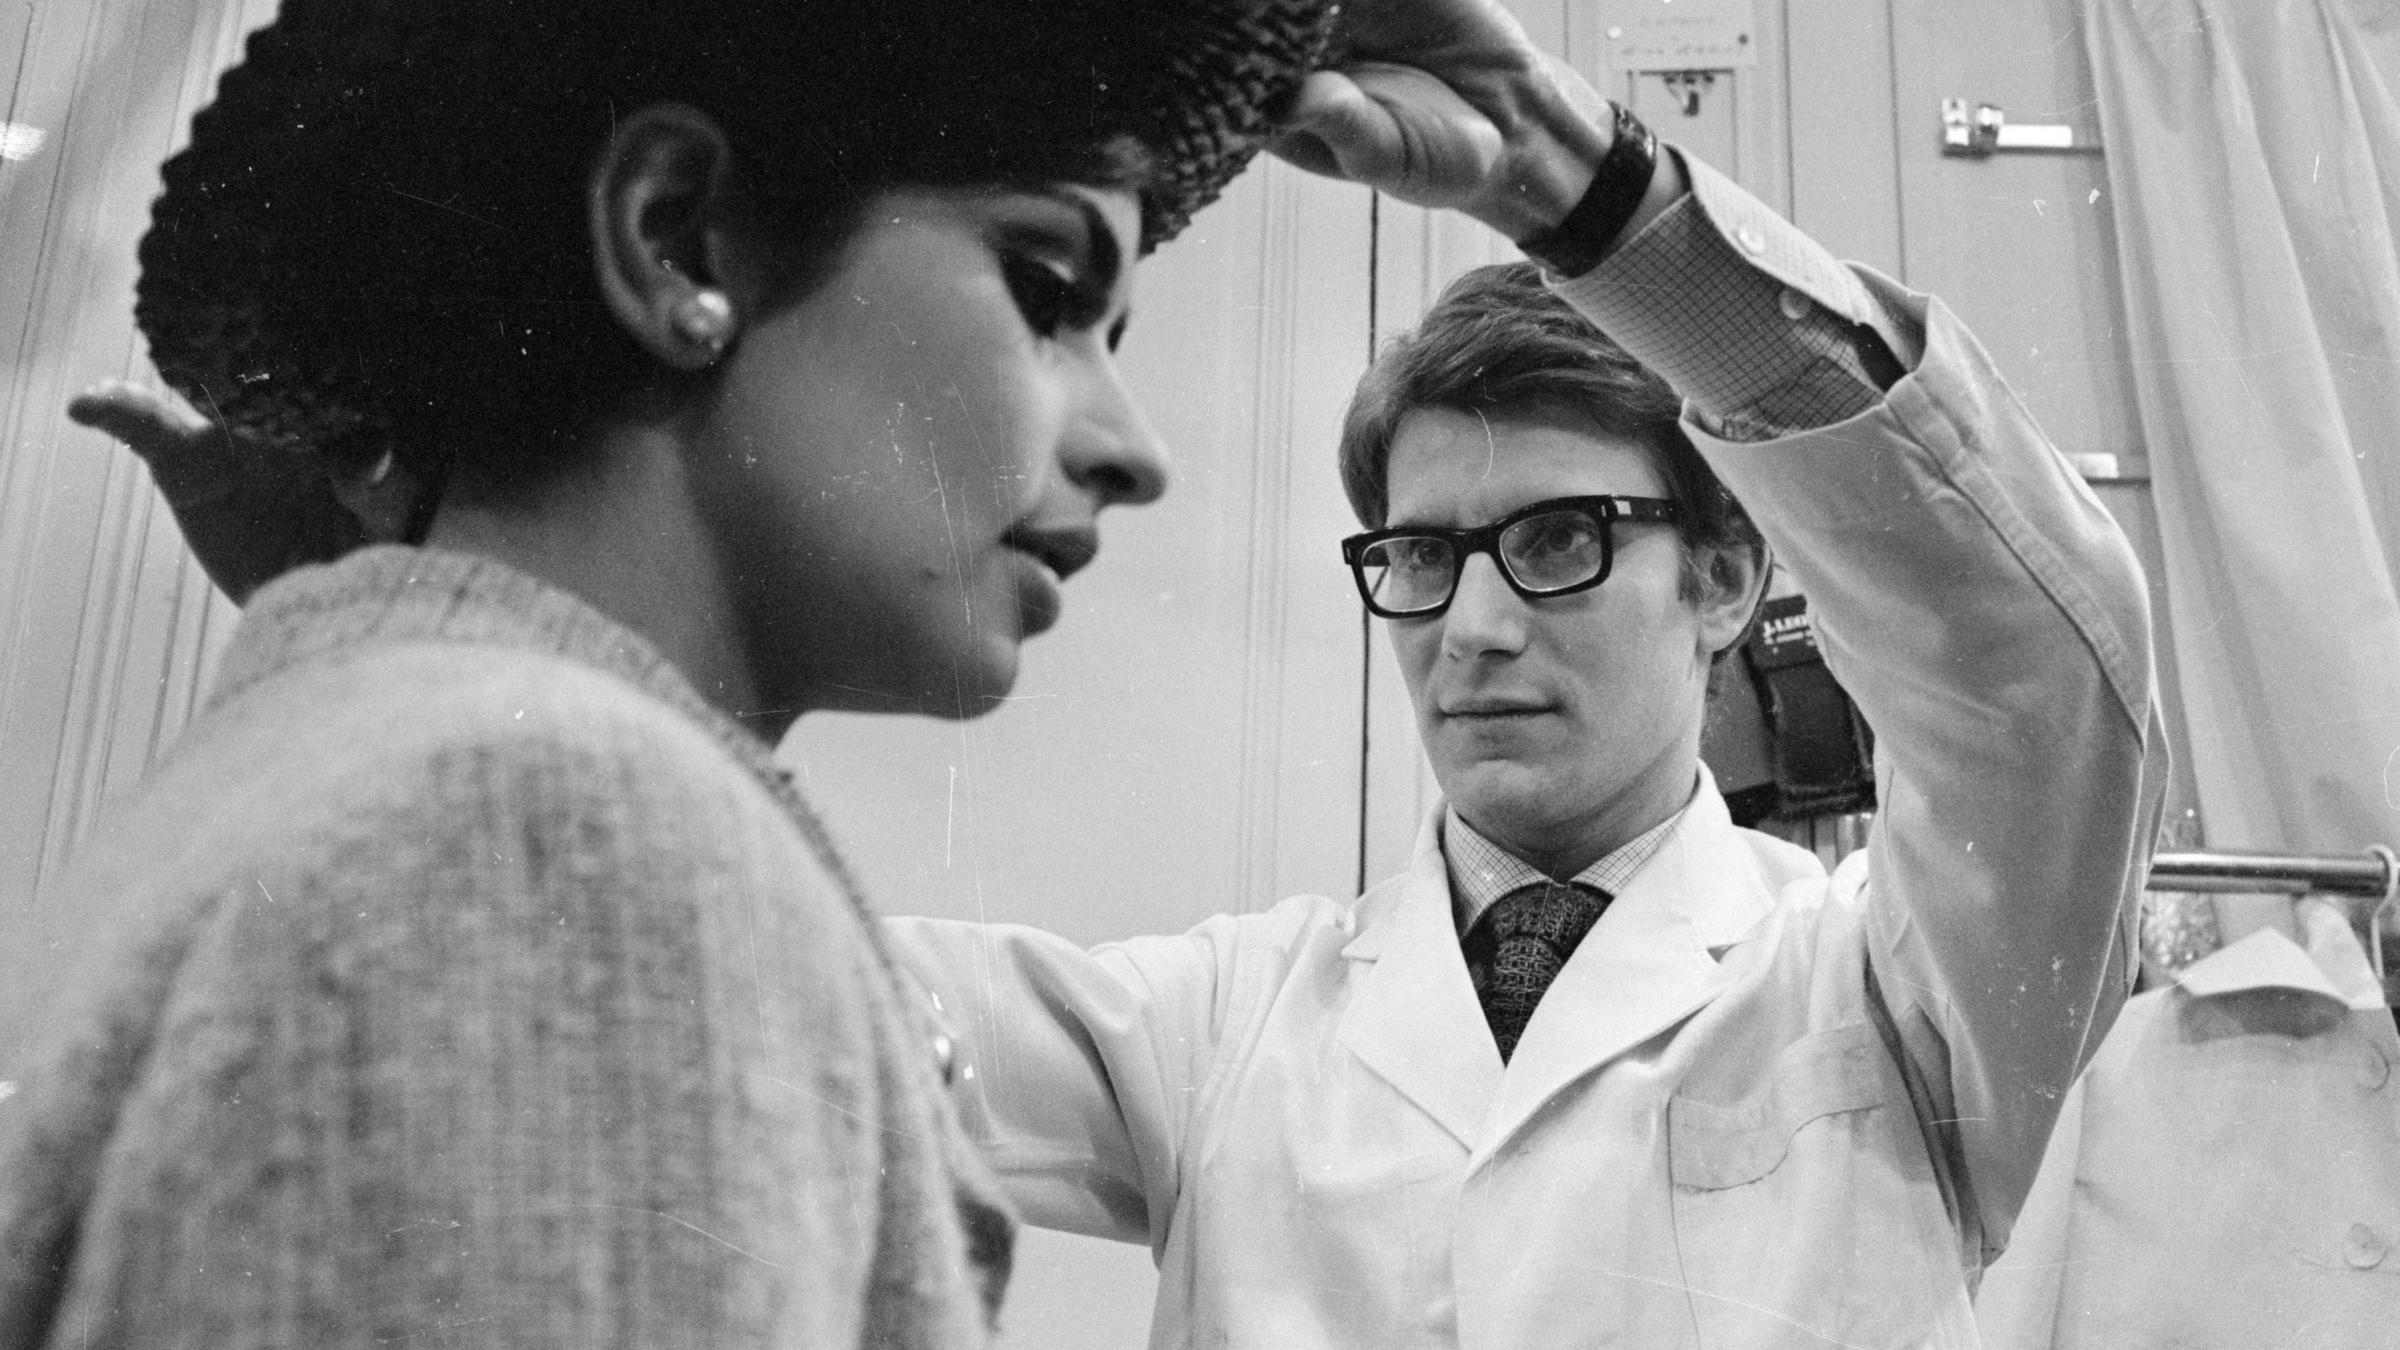 The turbulent love story behind yves saint laurent 39 s for Miroir yves saint laurent